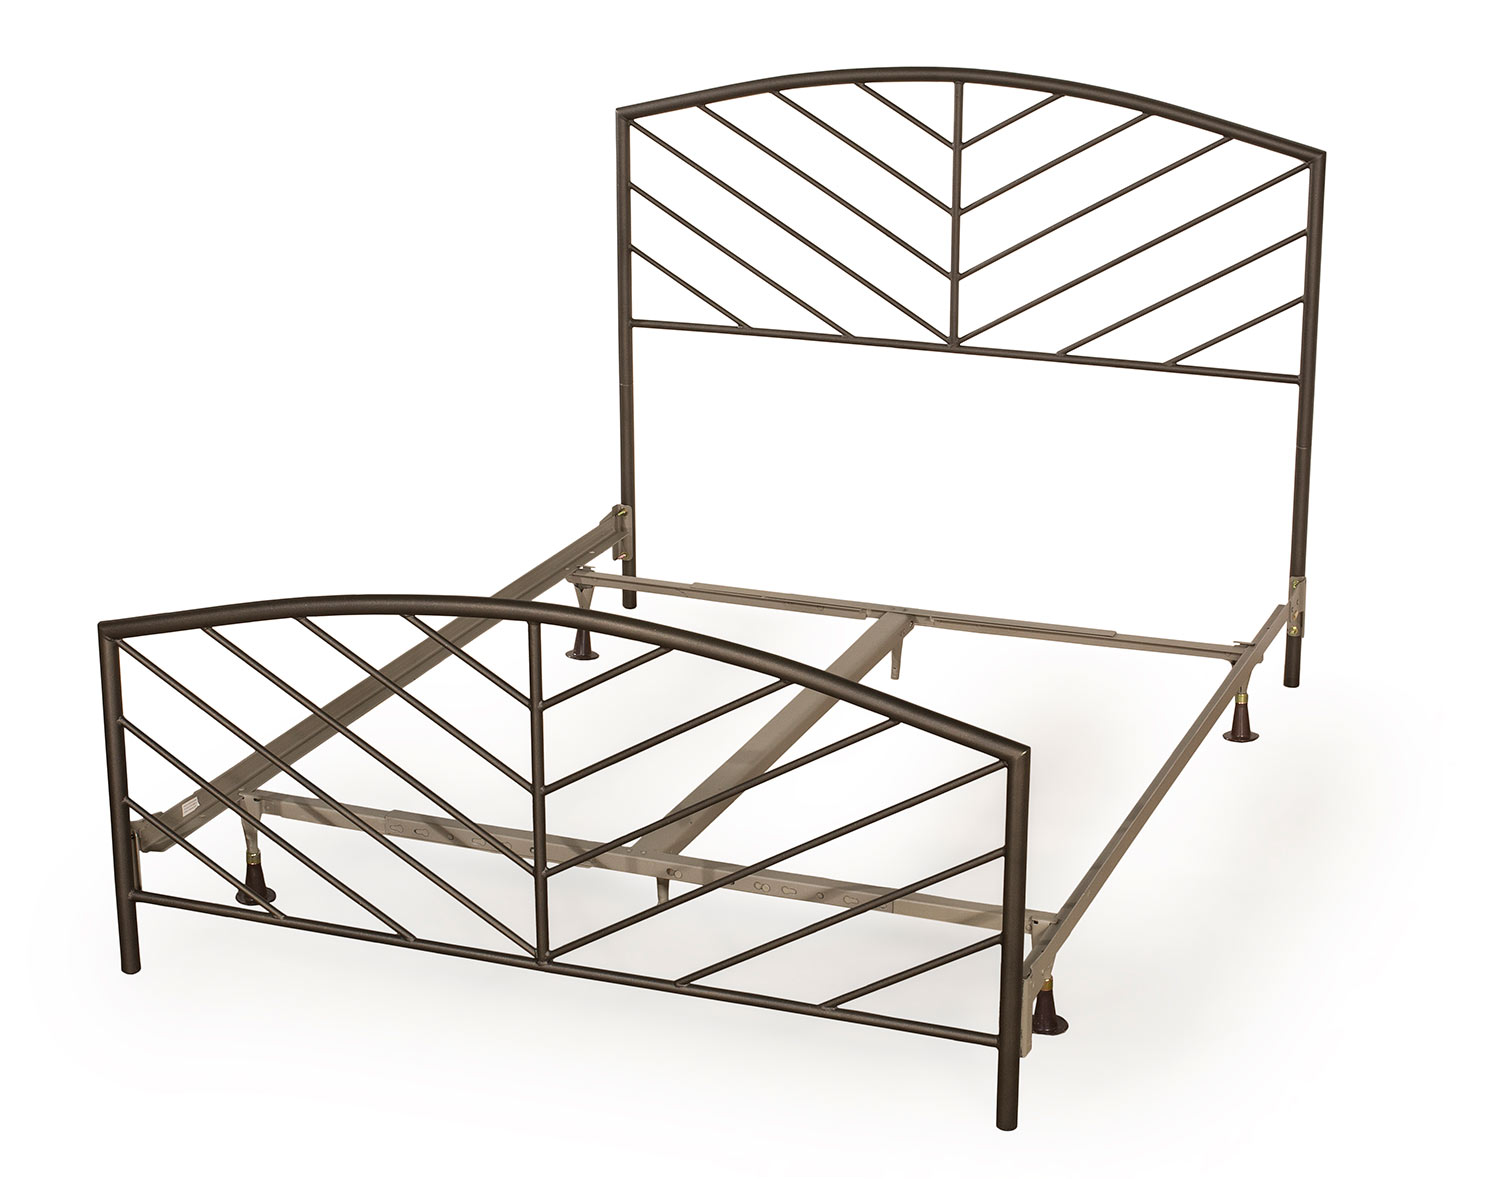 Hillsdale Essex Metal Bed with Frame - Speckled Pewter